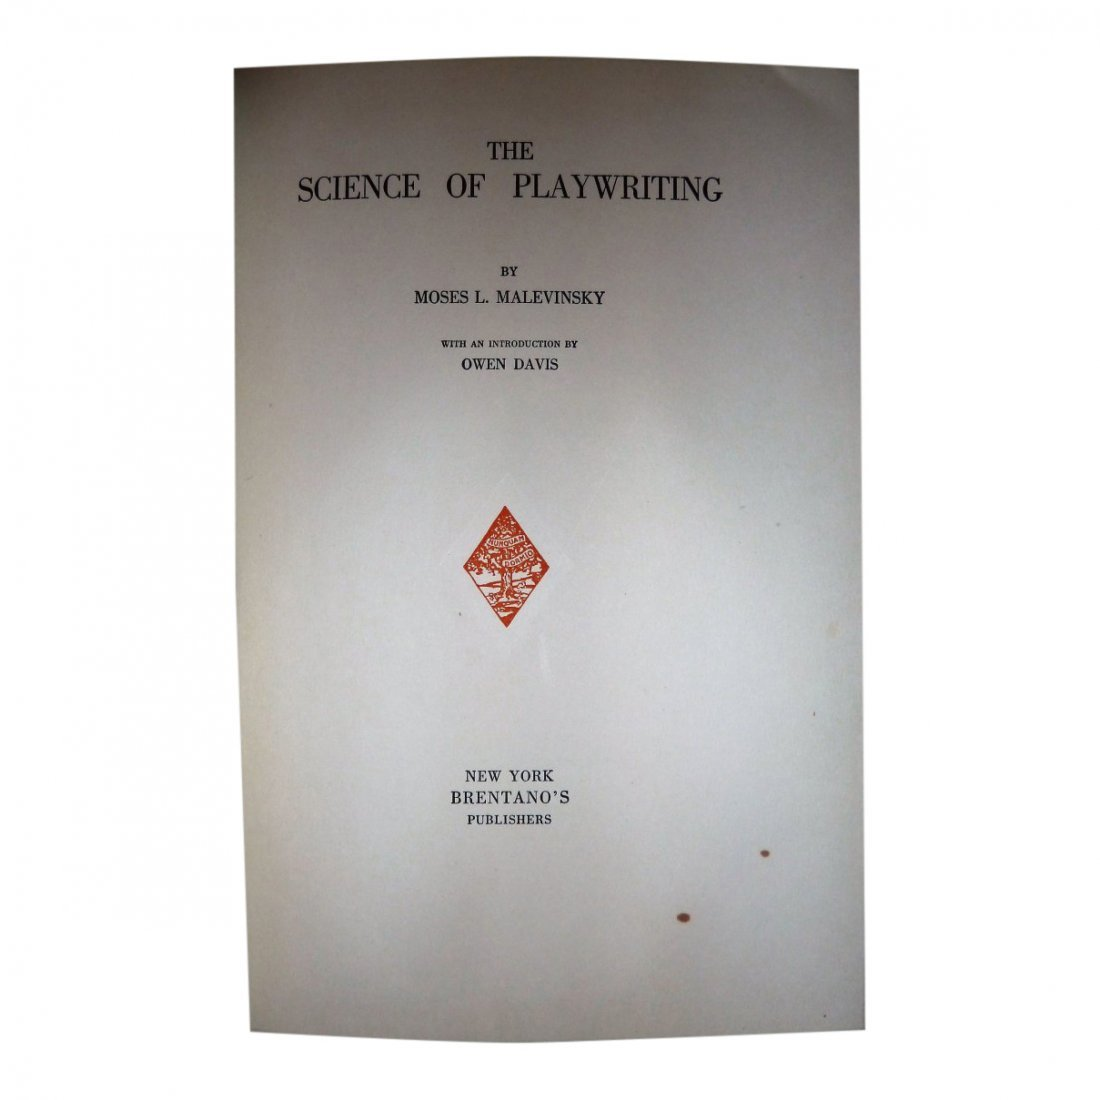 Moses Malevinsky: The Science of Playwriting - Signed